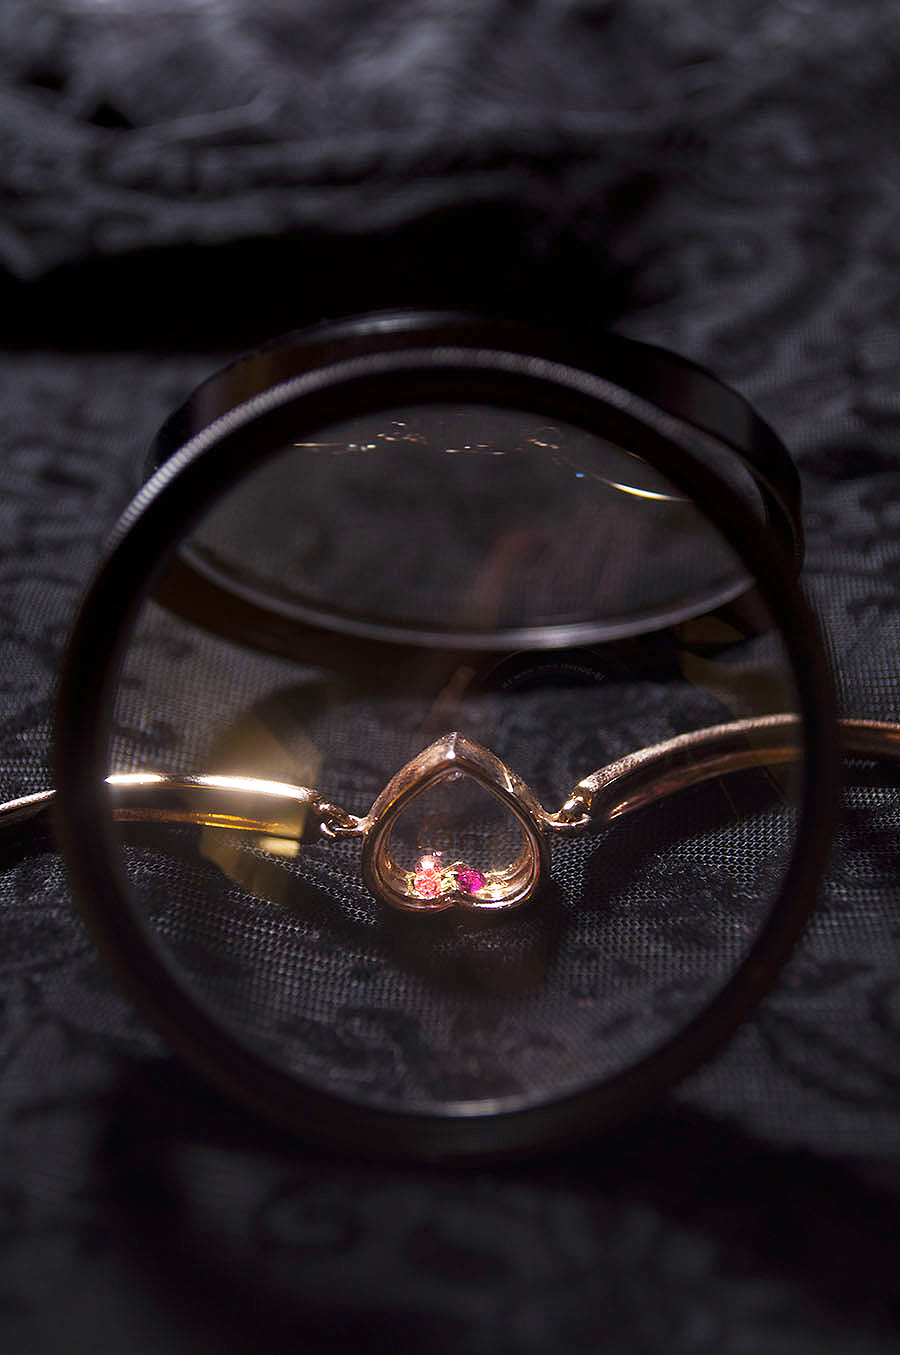 Rebecca_Huang_still_life_photography_dark_velvet_accessories_bracelet_jewelry_lens_magnifying_reflection_heart_gold_jewels_floral